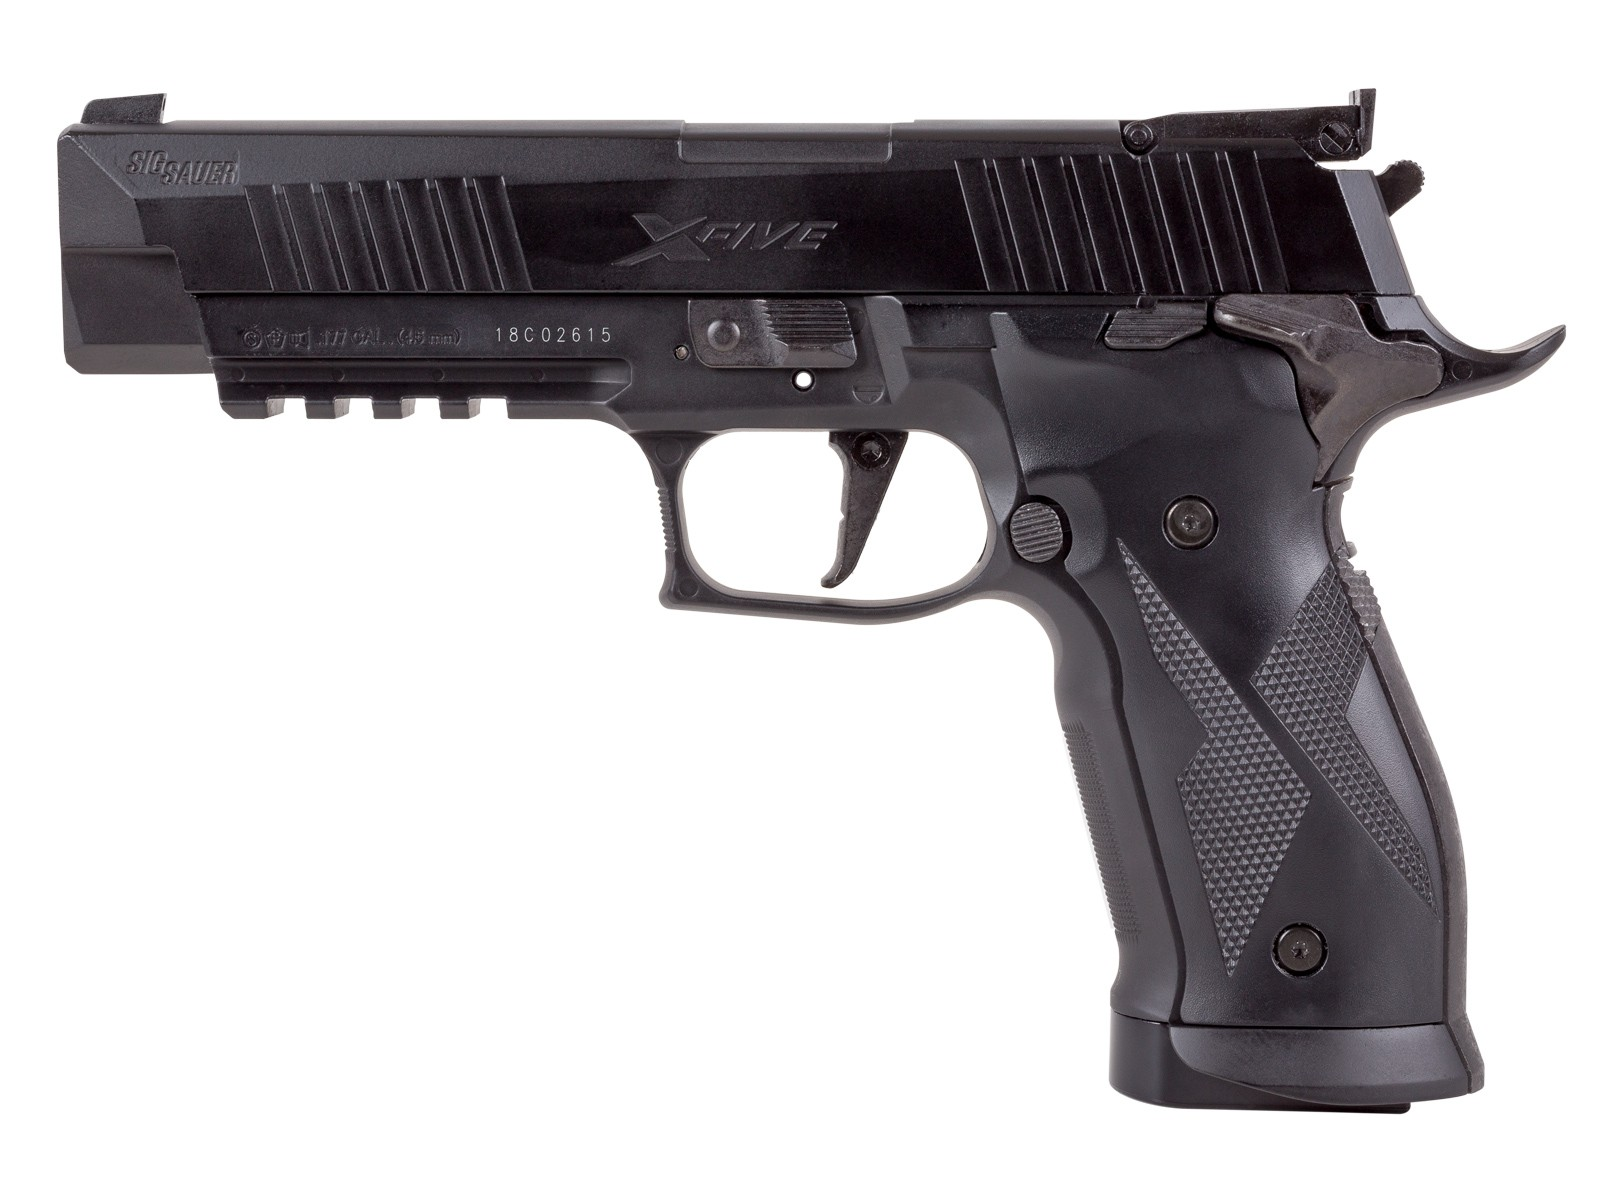 Sig Sauer X-Five ASP CO2 Pellet Pistol, Black 0.177